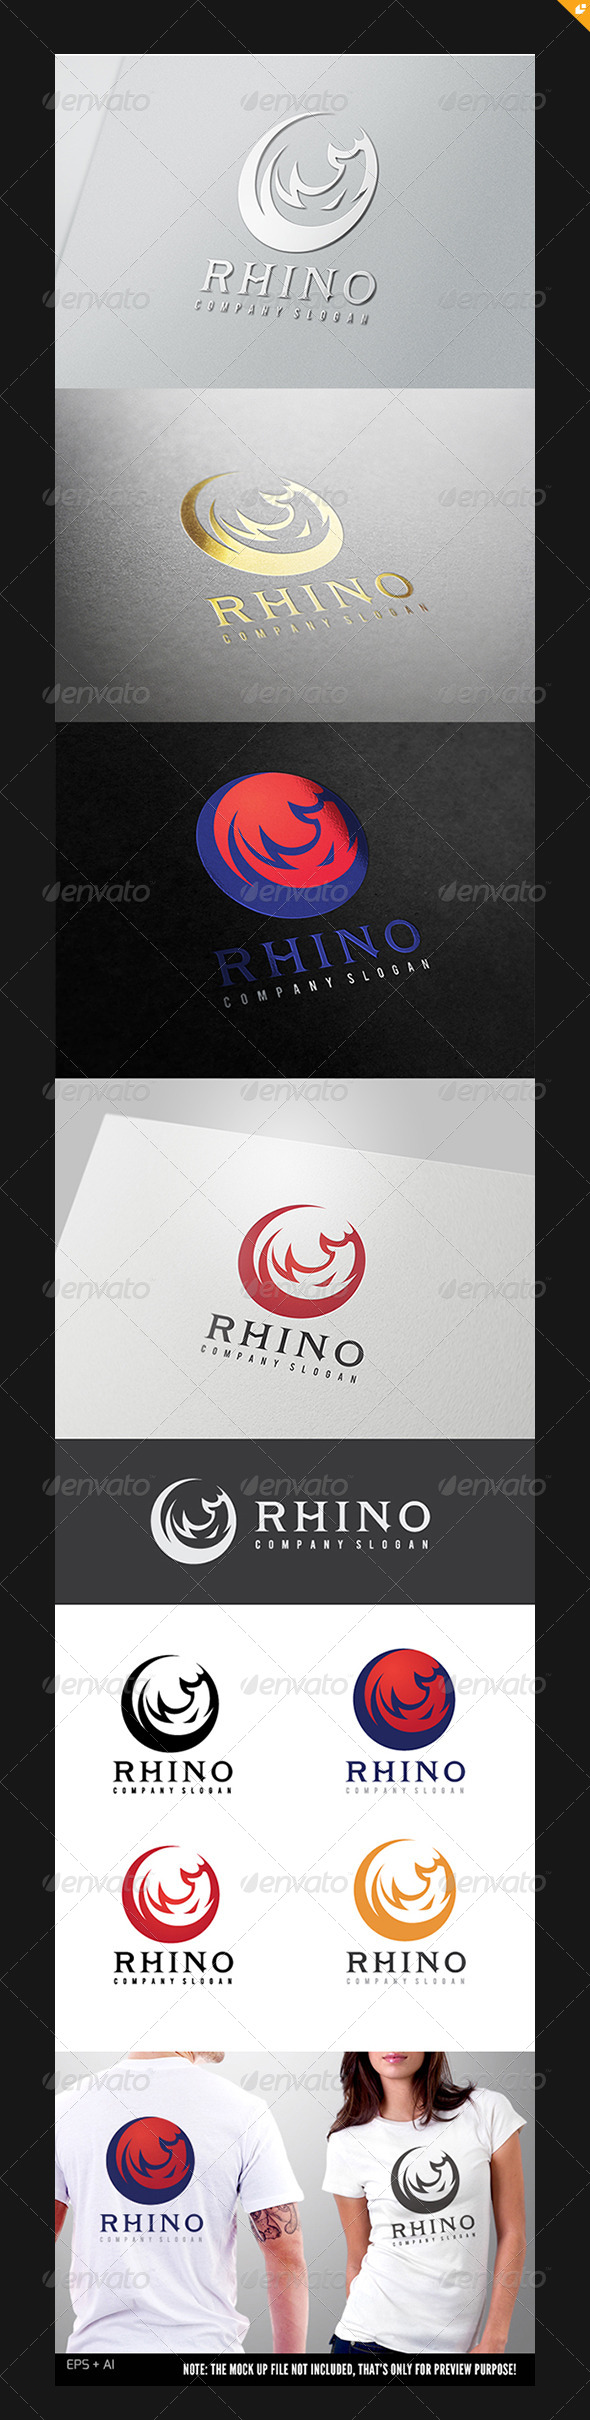 GraphicRiver Rhino V1 5718013